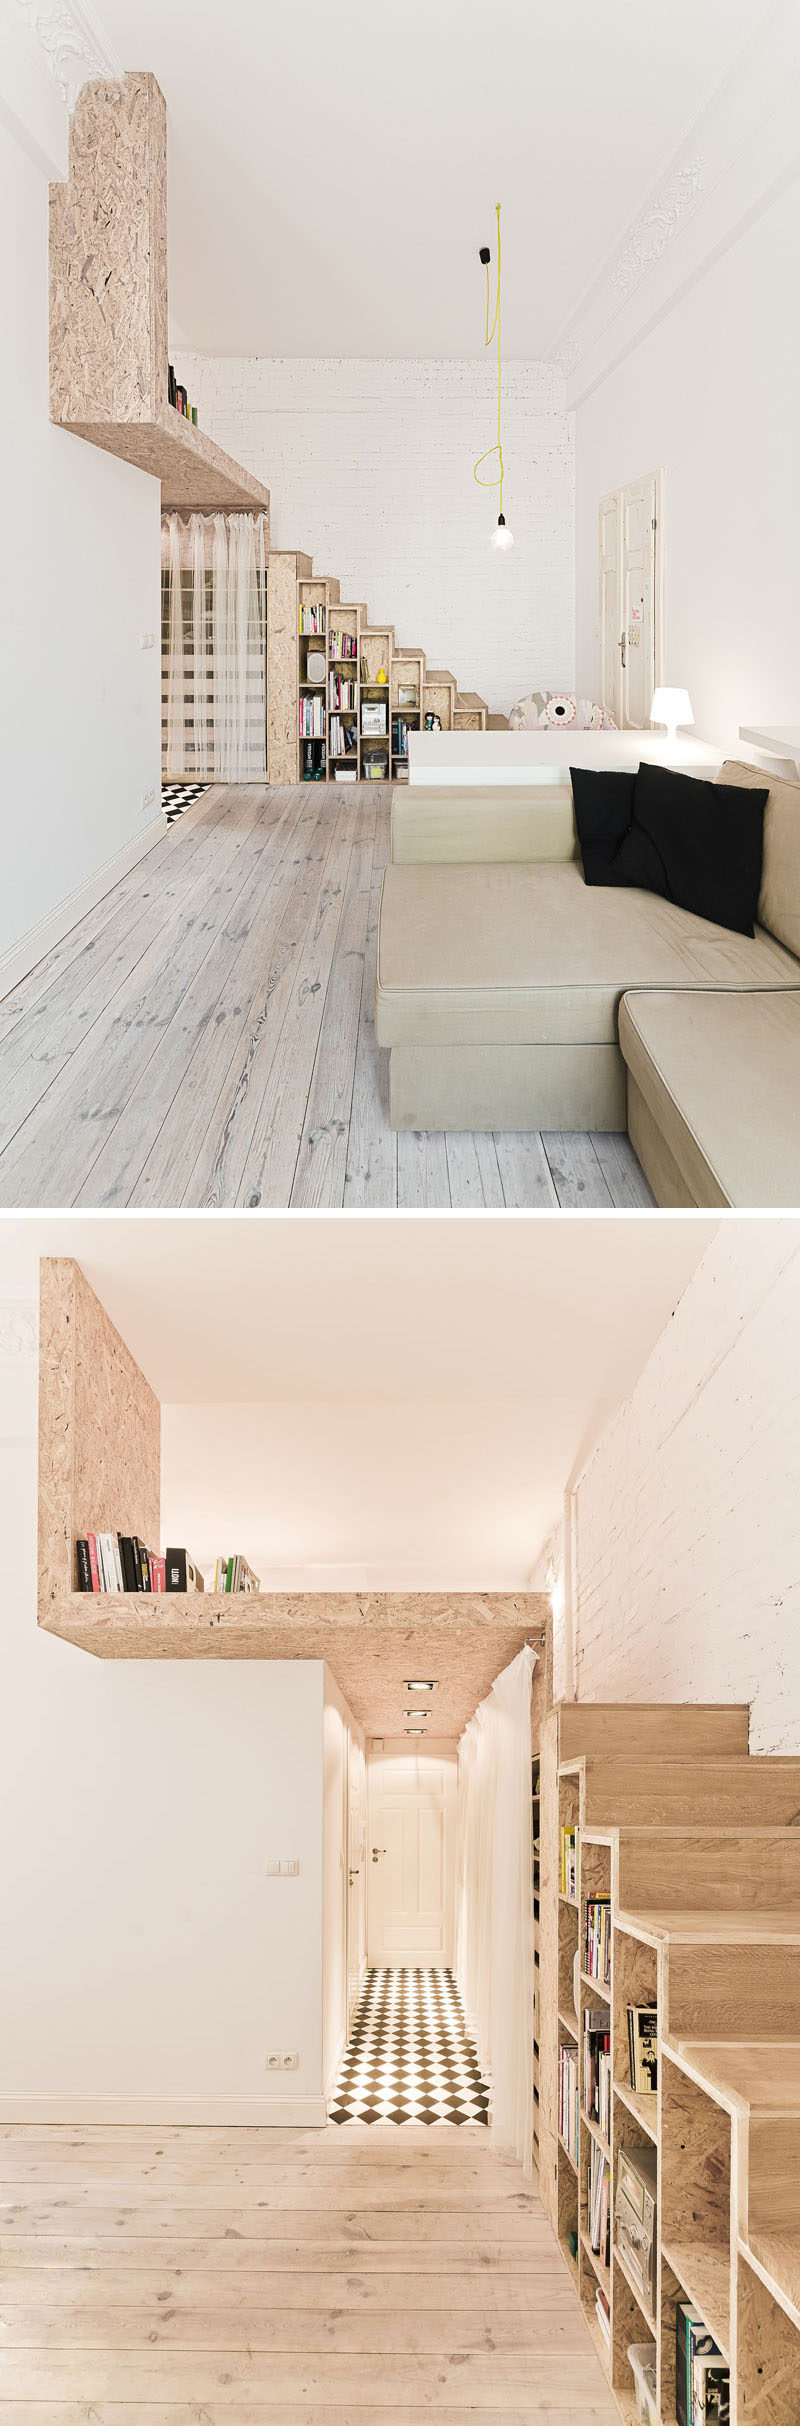 In this small apartment, these wooden stairs with storage lead to a lofted bed.